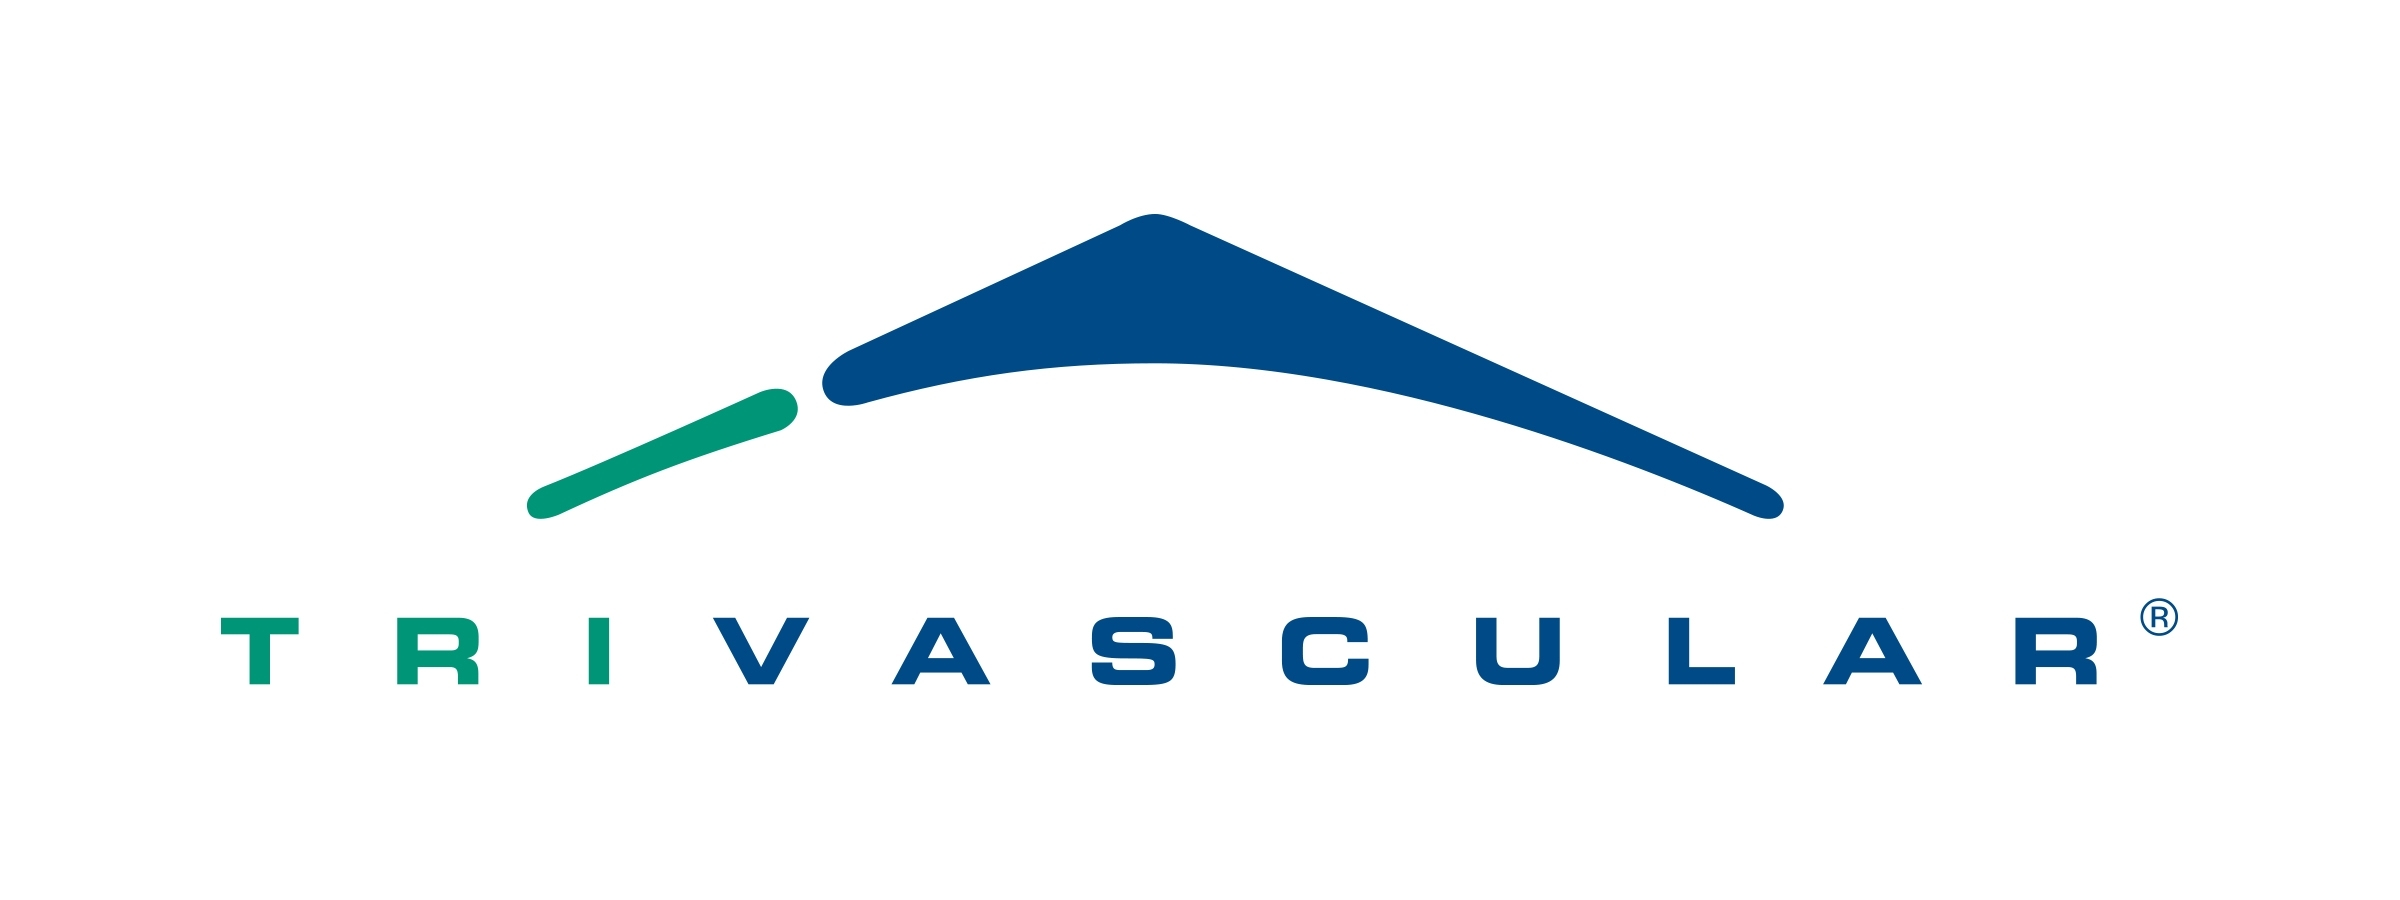 TriVascular Technologies, Inc.